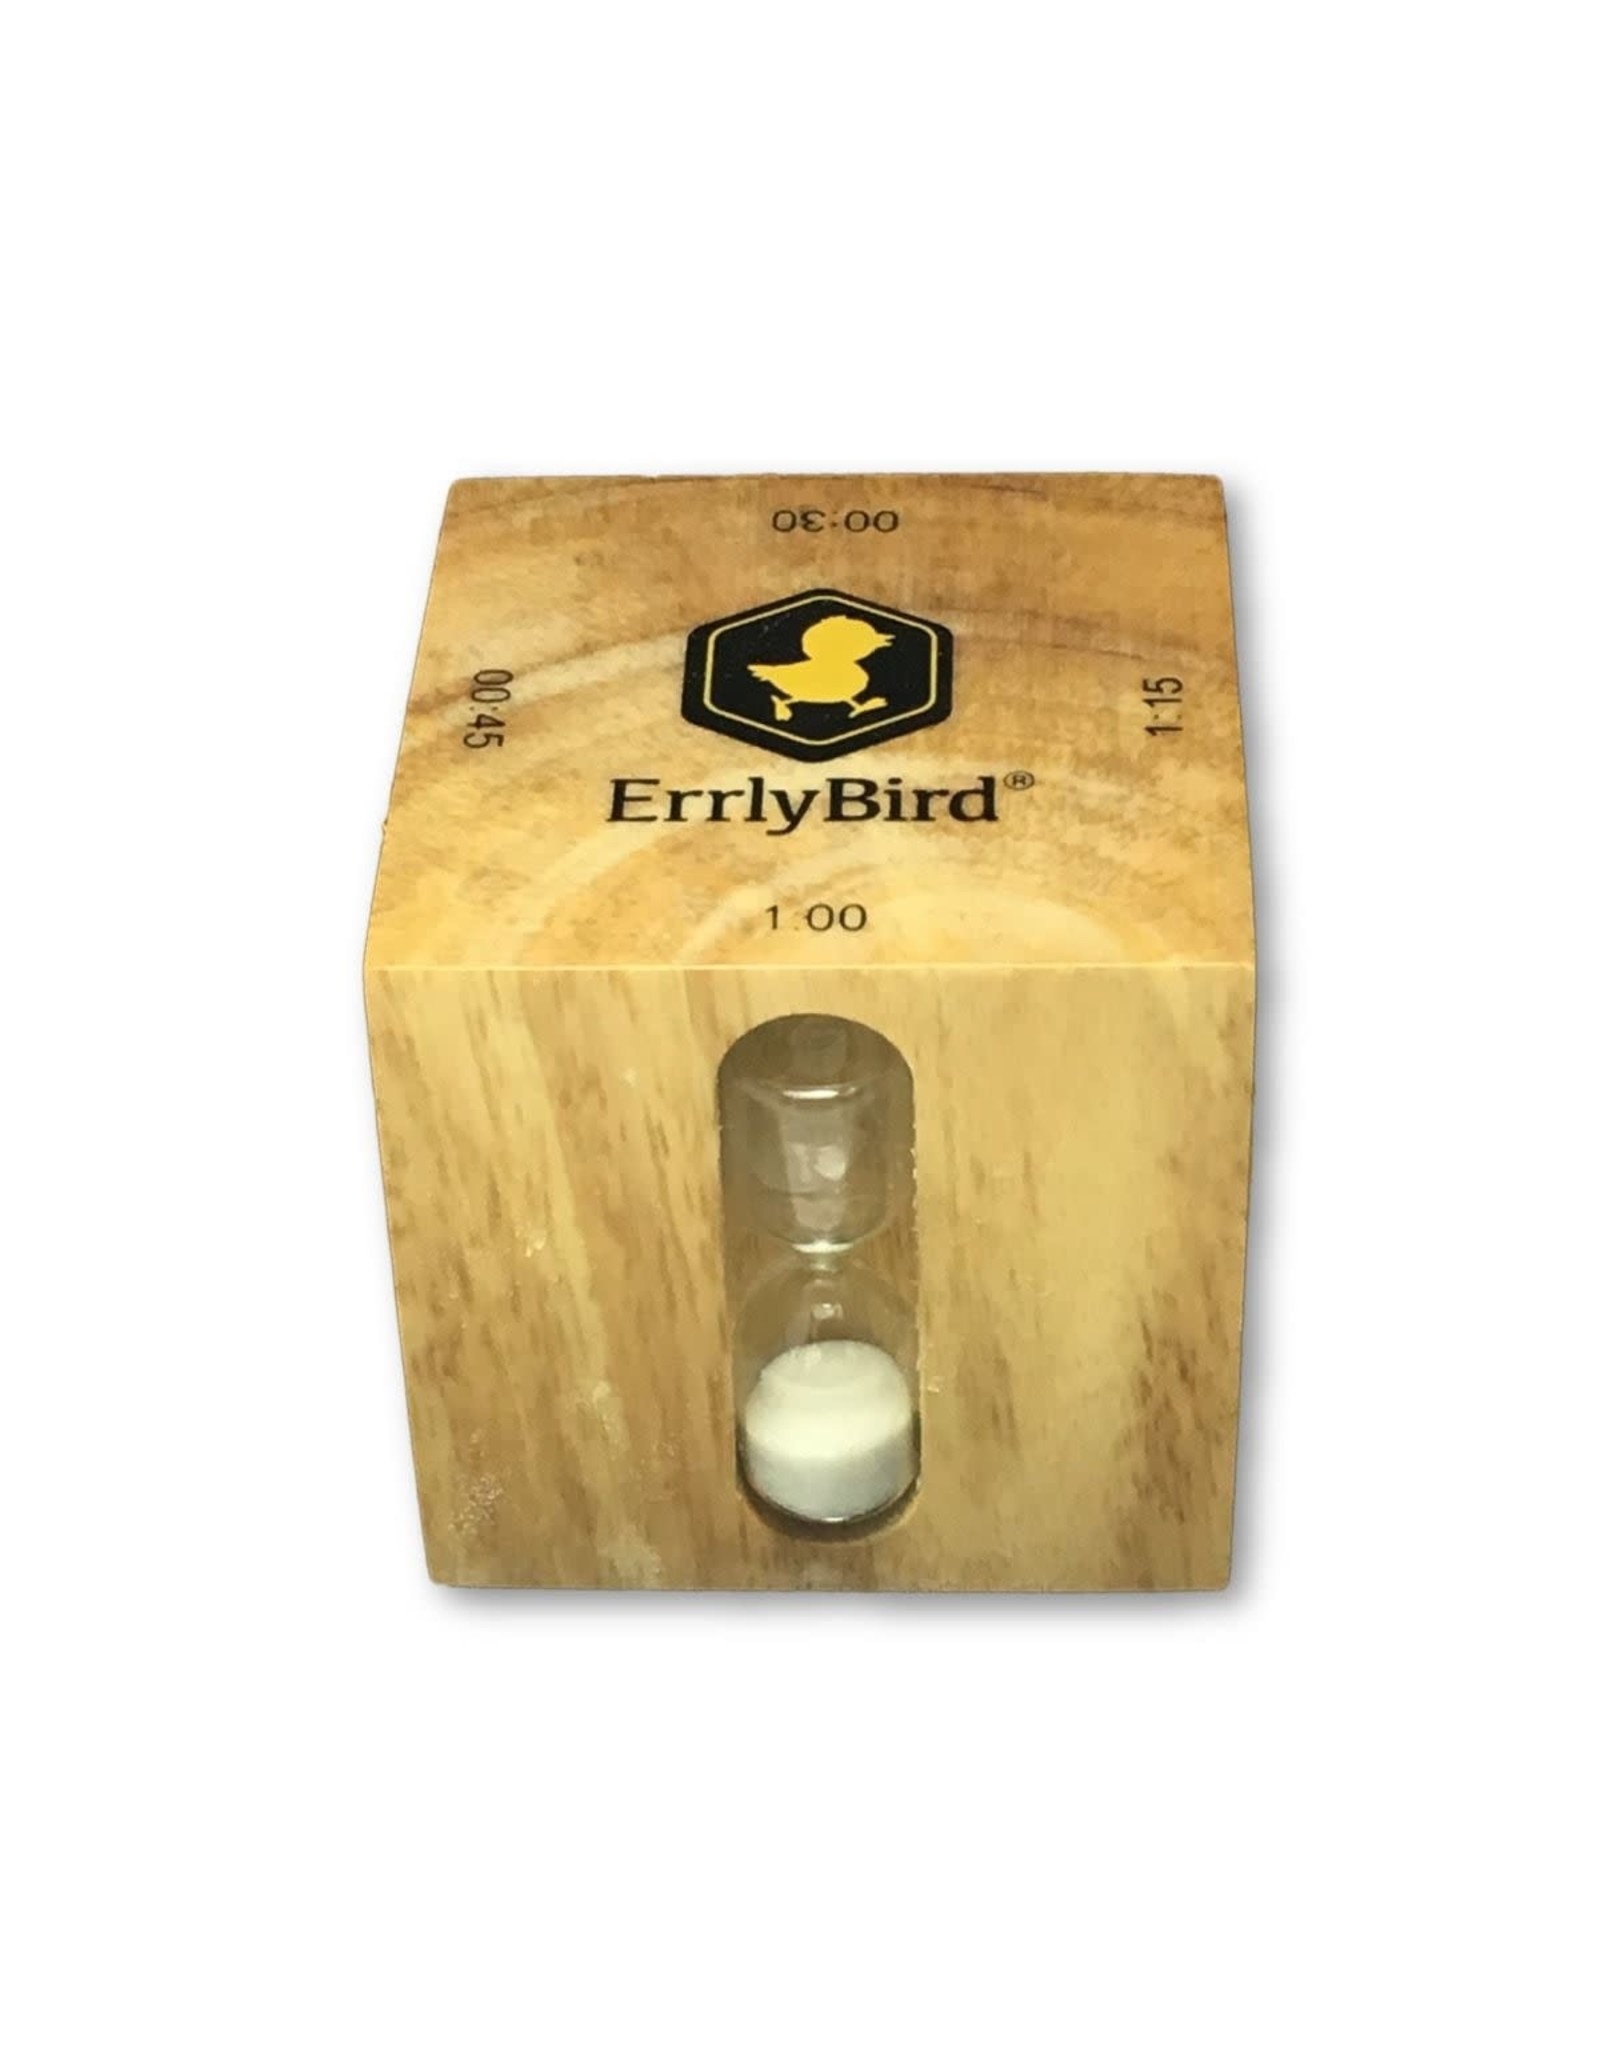 Errly Bird errly bird 4-in-1 Shot Clock Timer